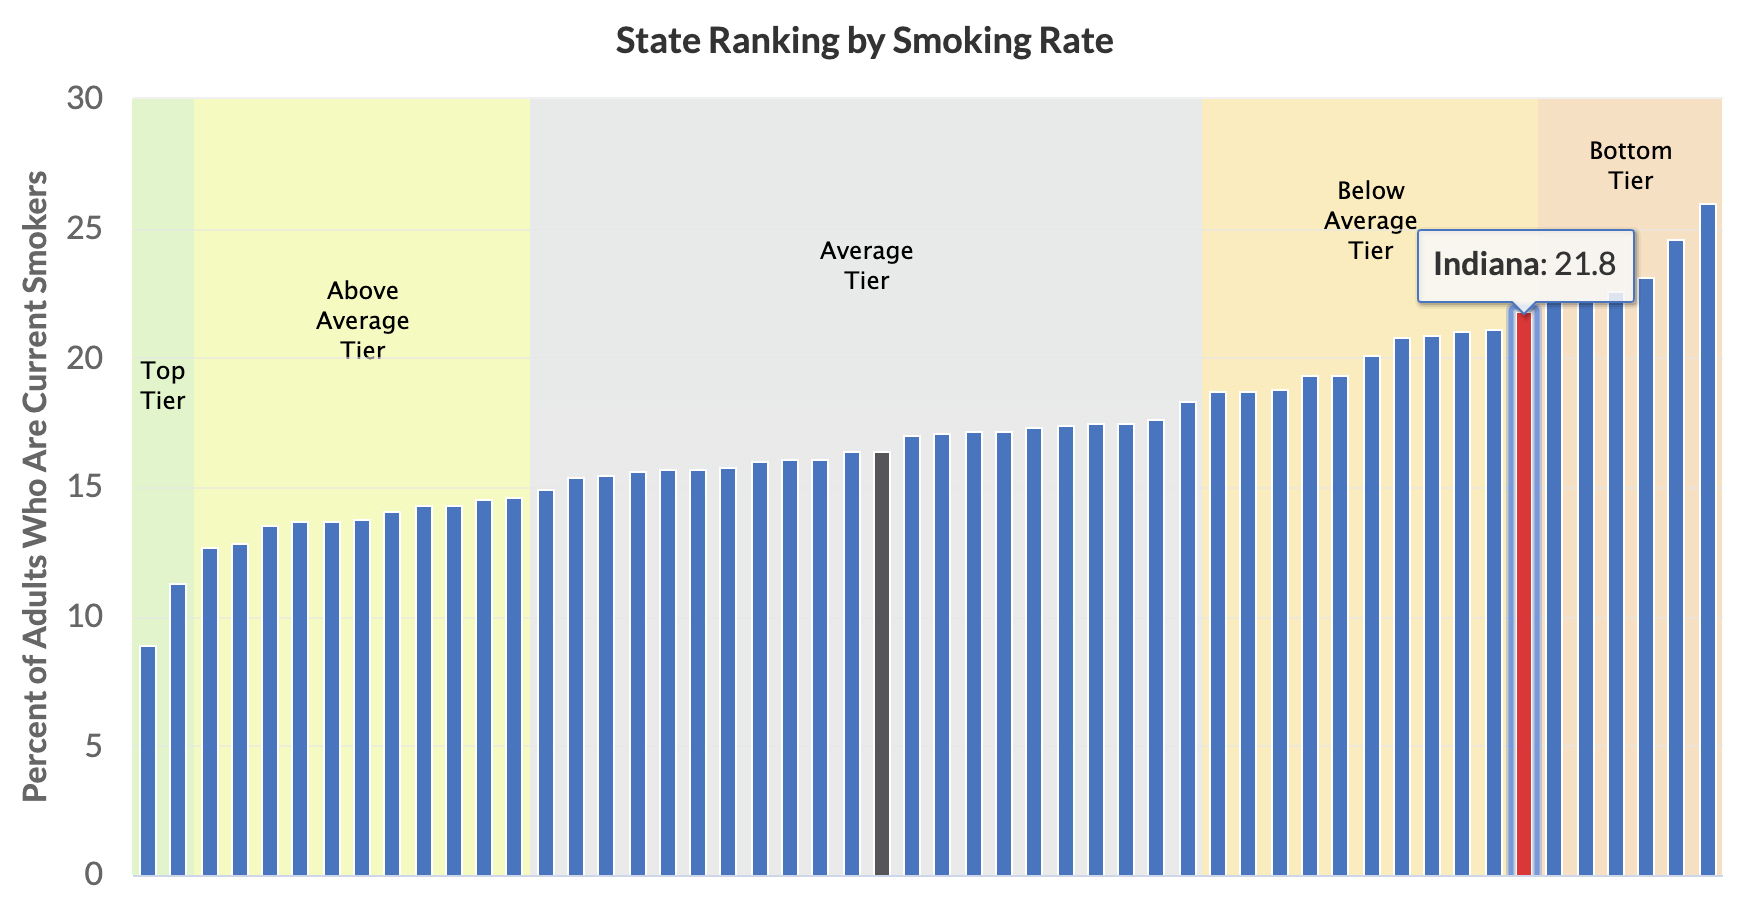 State ranking by smoking rate